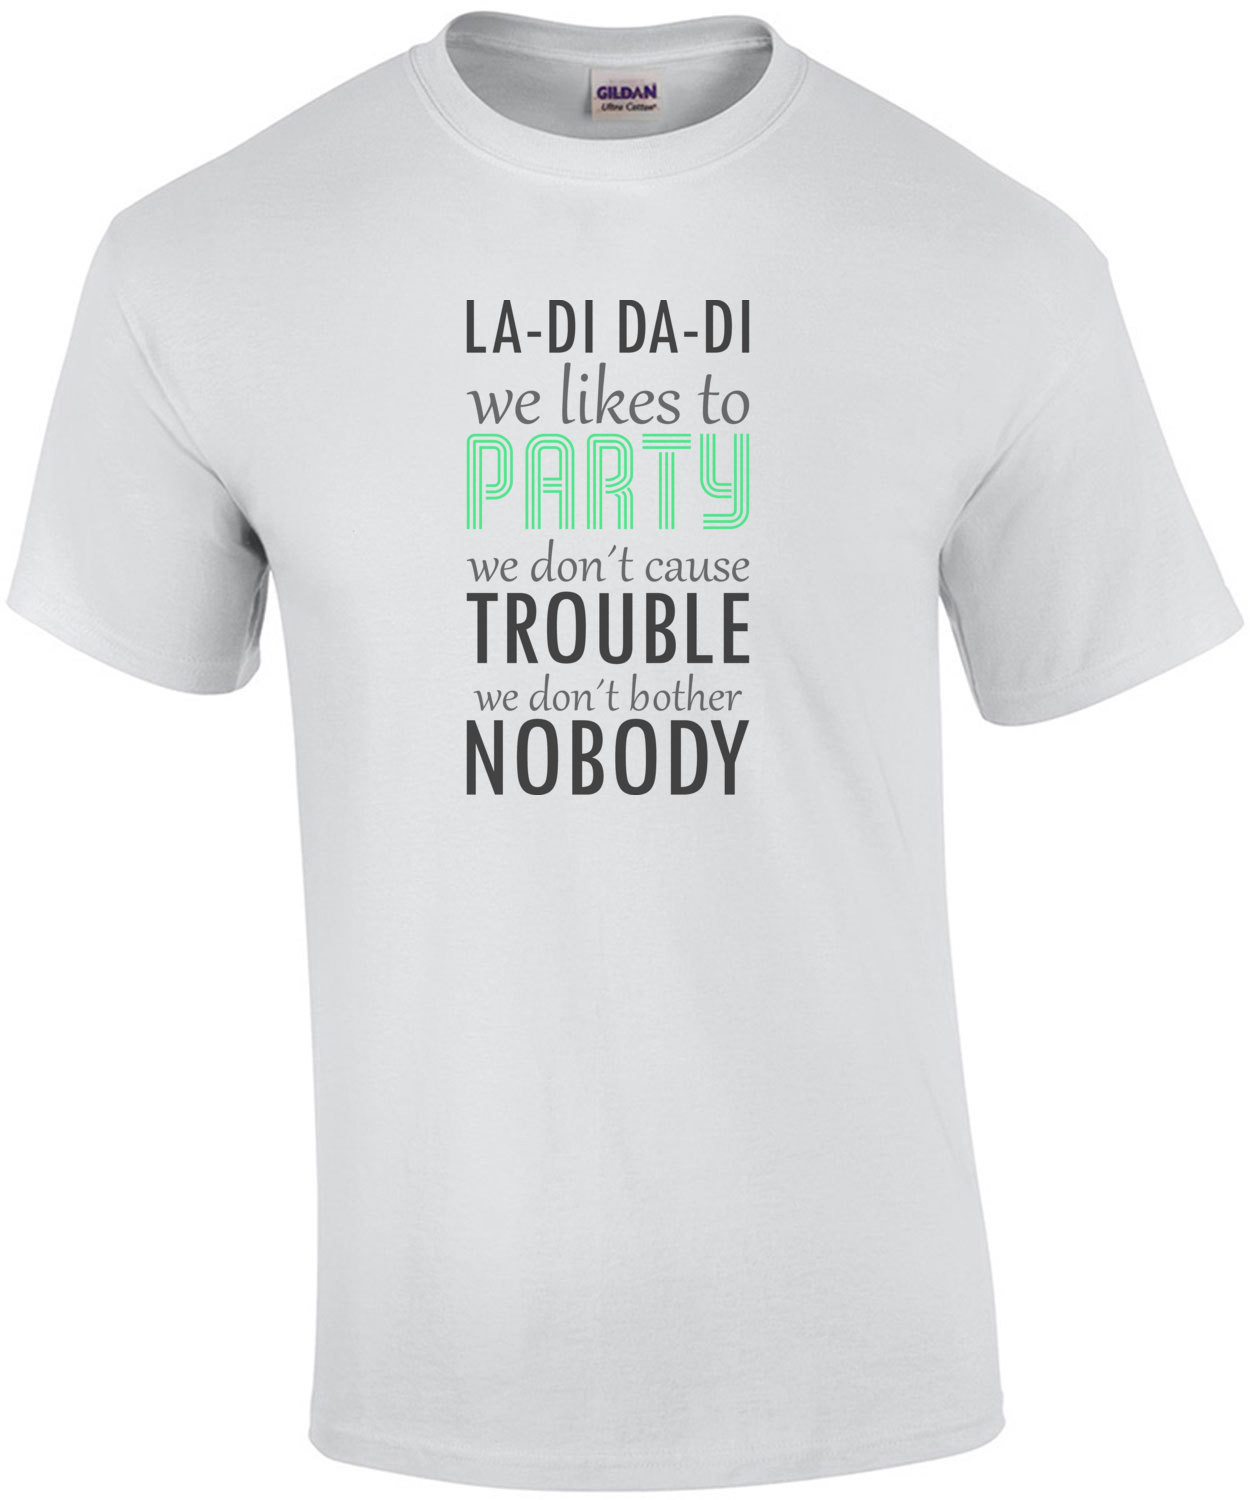 La-di da-di we likes to party we don't cause trouble we don;t bother nobody - snoop dog - slick rick - doug e. fresh 80's 90's hiphop rap t-shirt